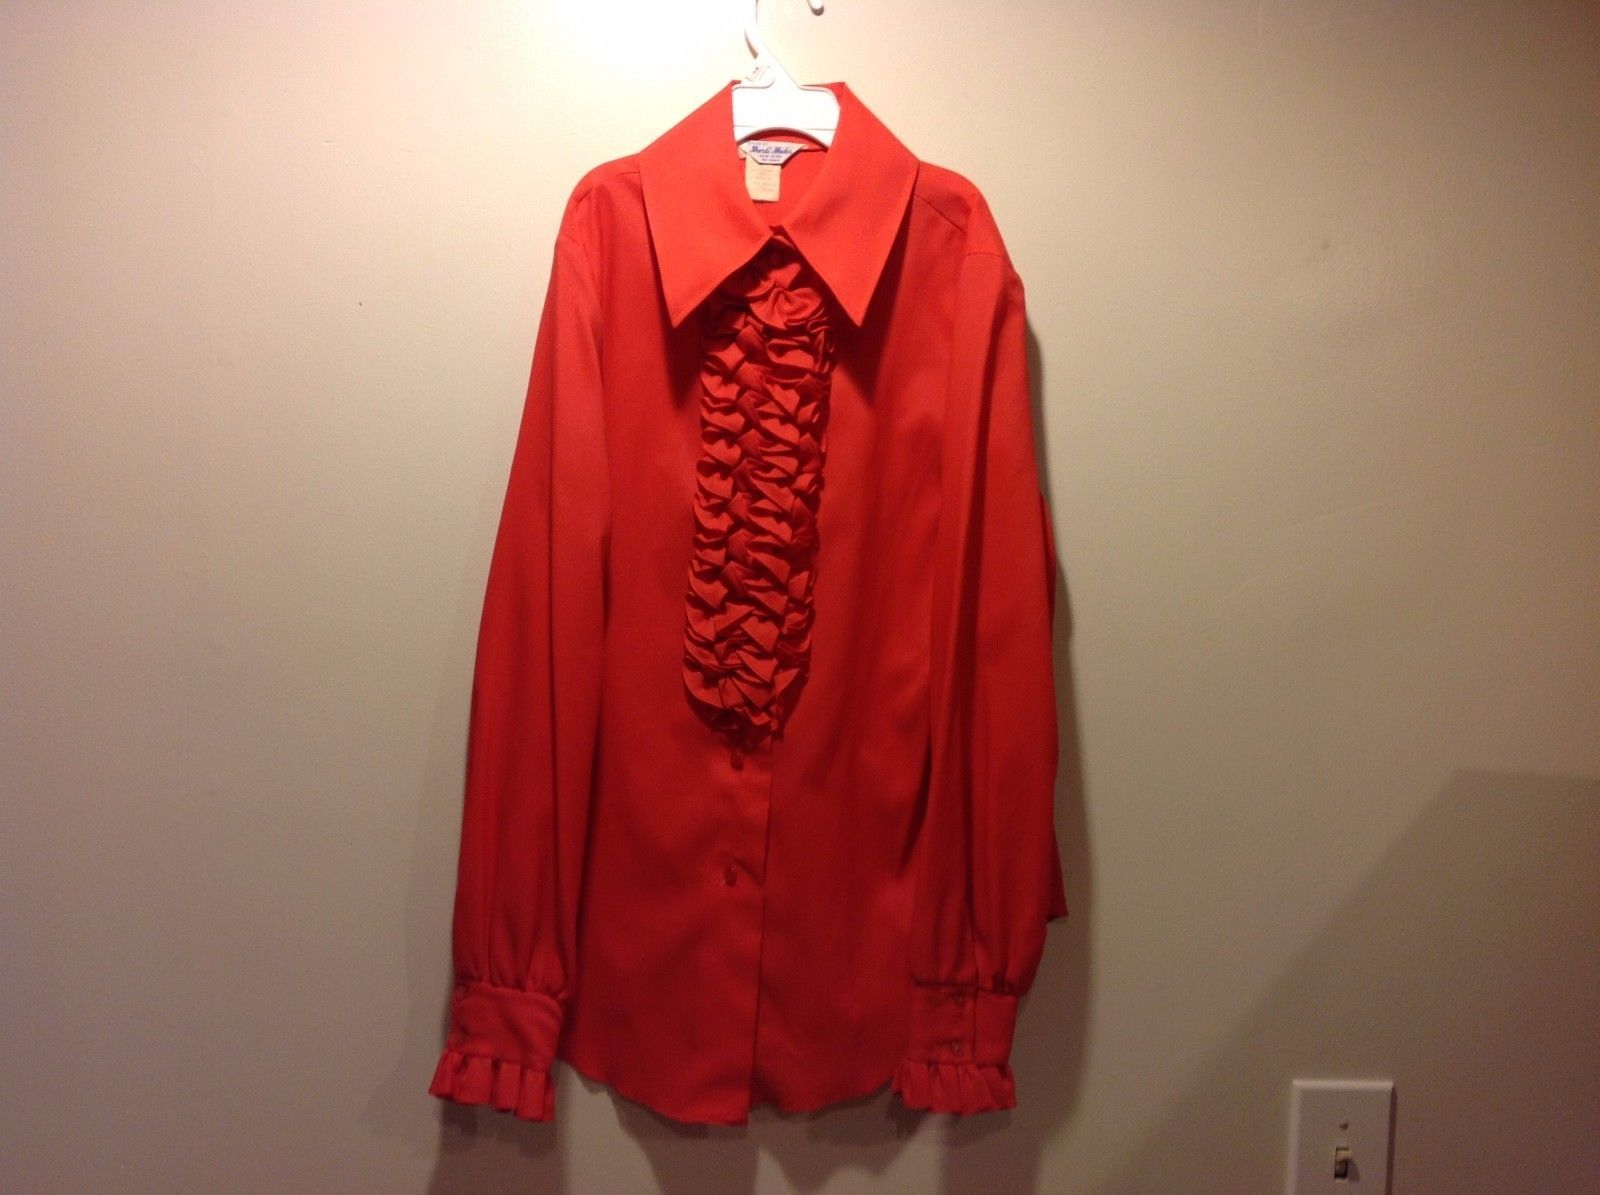 Great Condition Frilly Blouse Bright Red Orange Mardi Modes Sleeve Cuffs